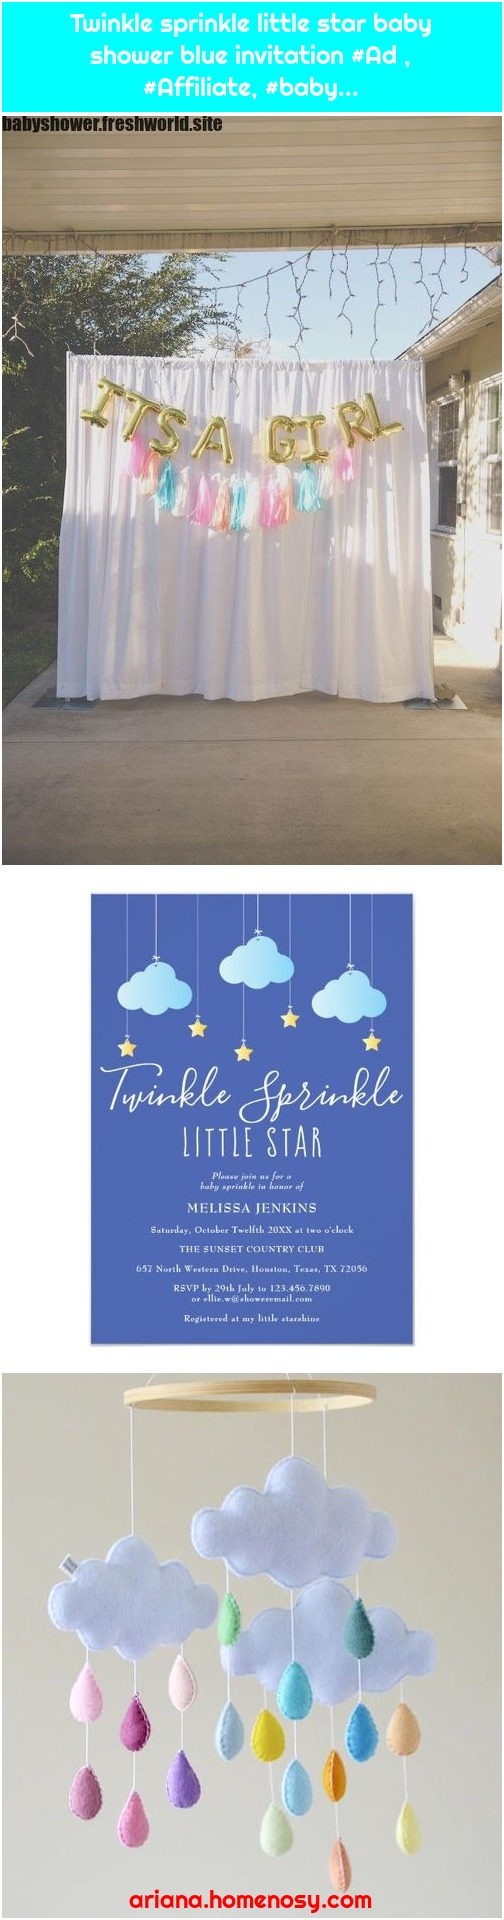 Twinkle sprinkle little star baby shower blue invitation #Ad , #Affiliate, #baby...